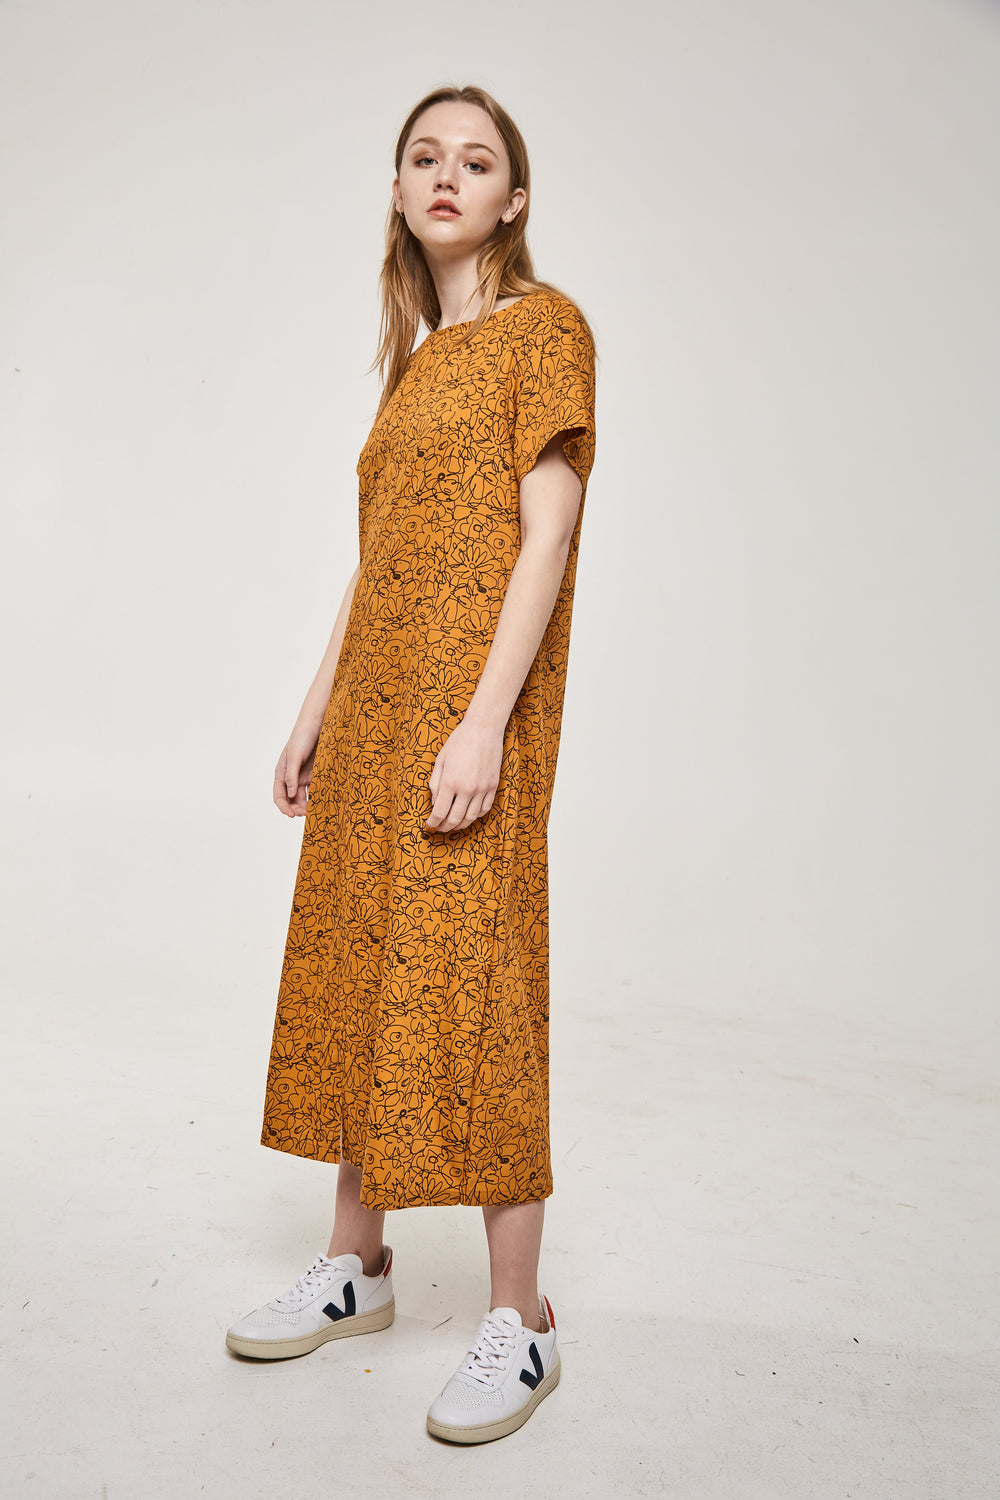 shop ethical sustainable & ethical clothing by Arc & Bow Focus Dress